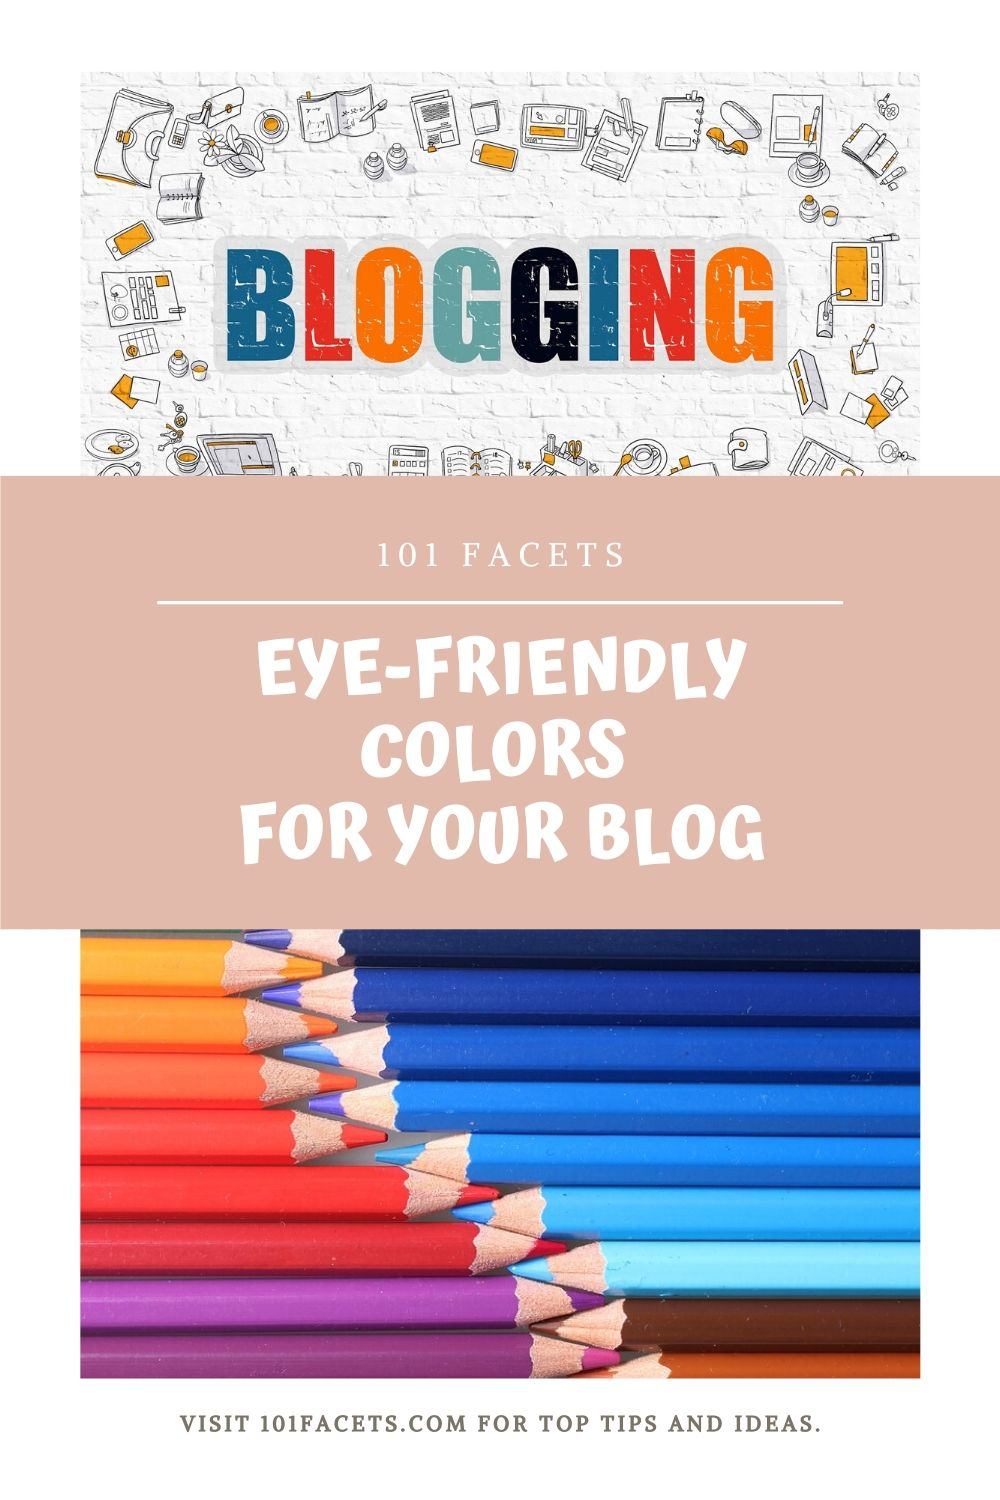 Eye-Friendly Colors for Your Blog